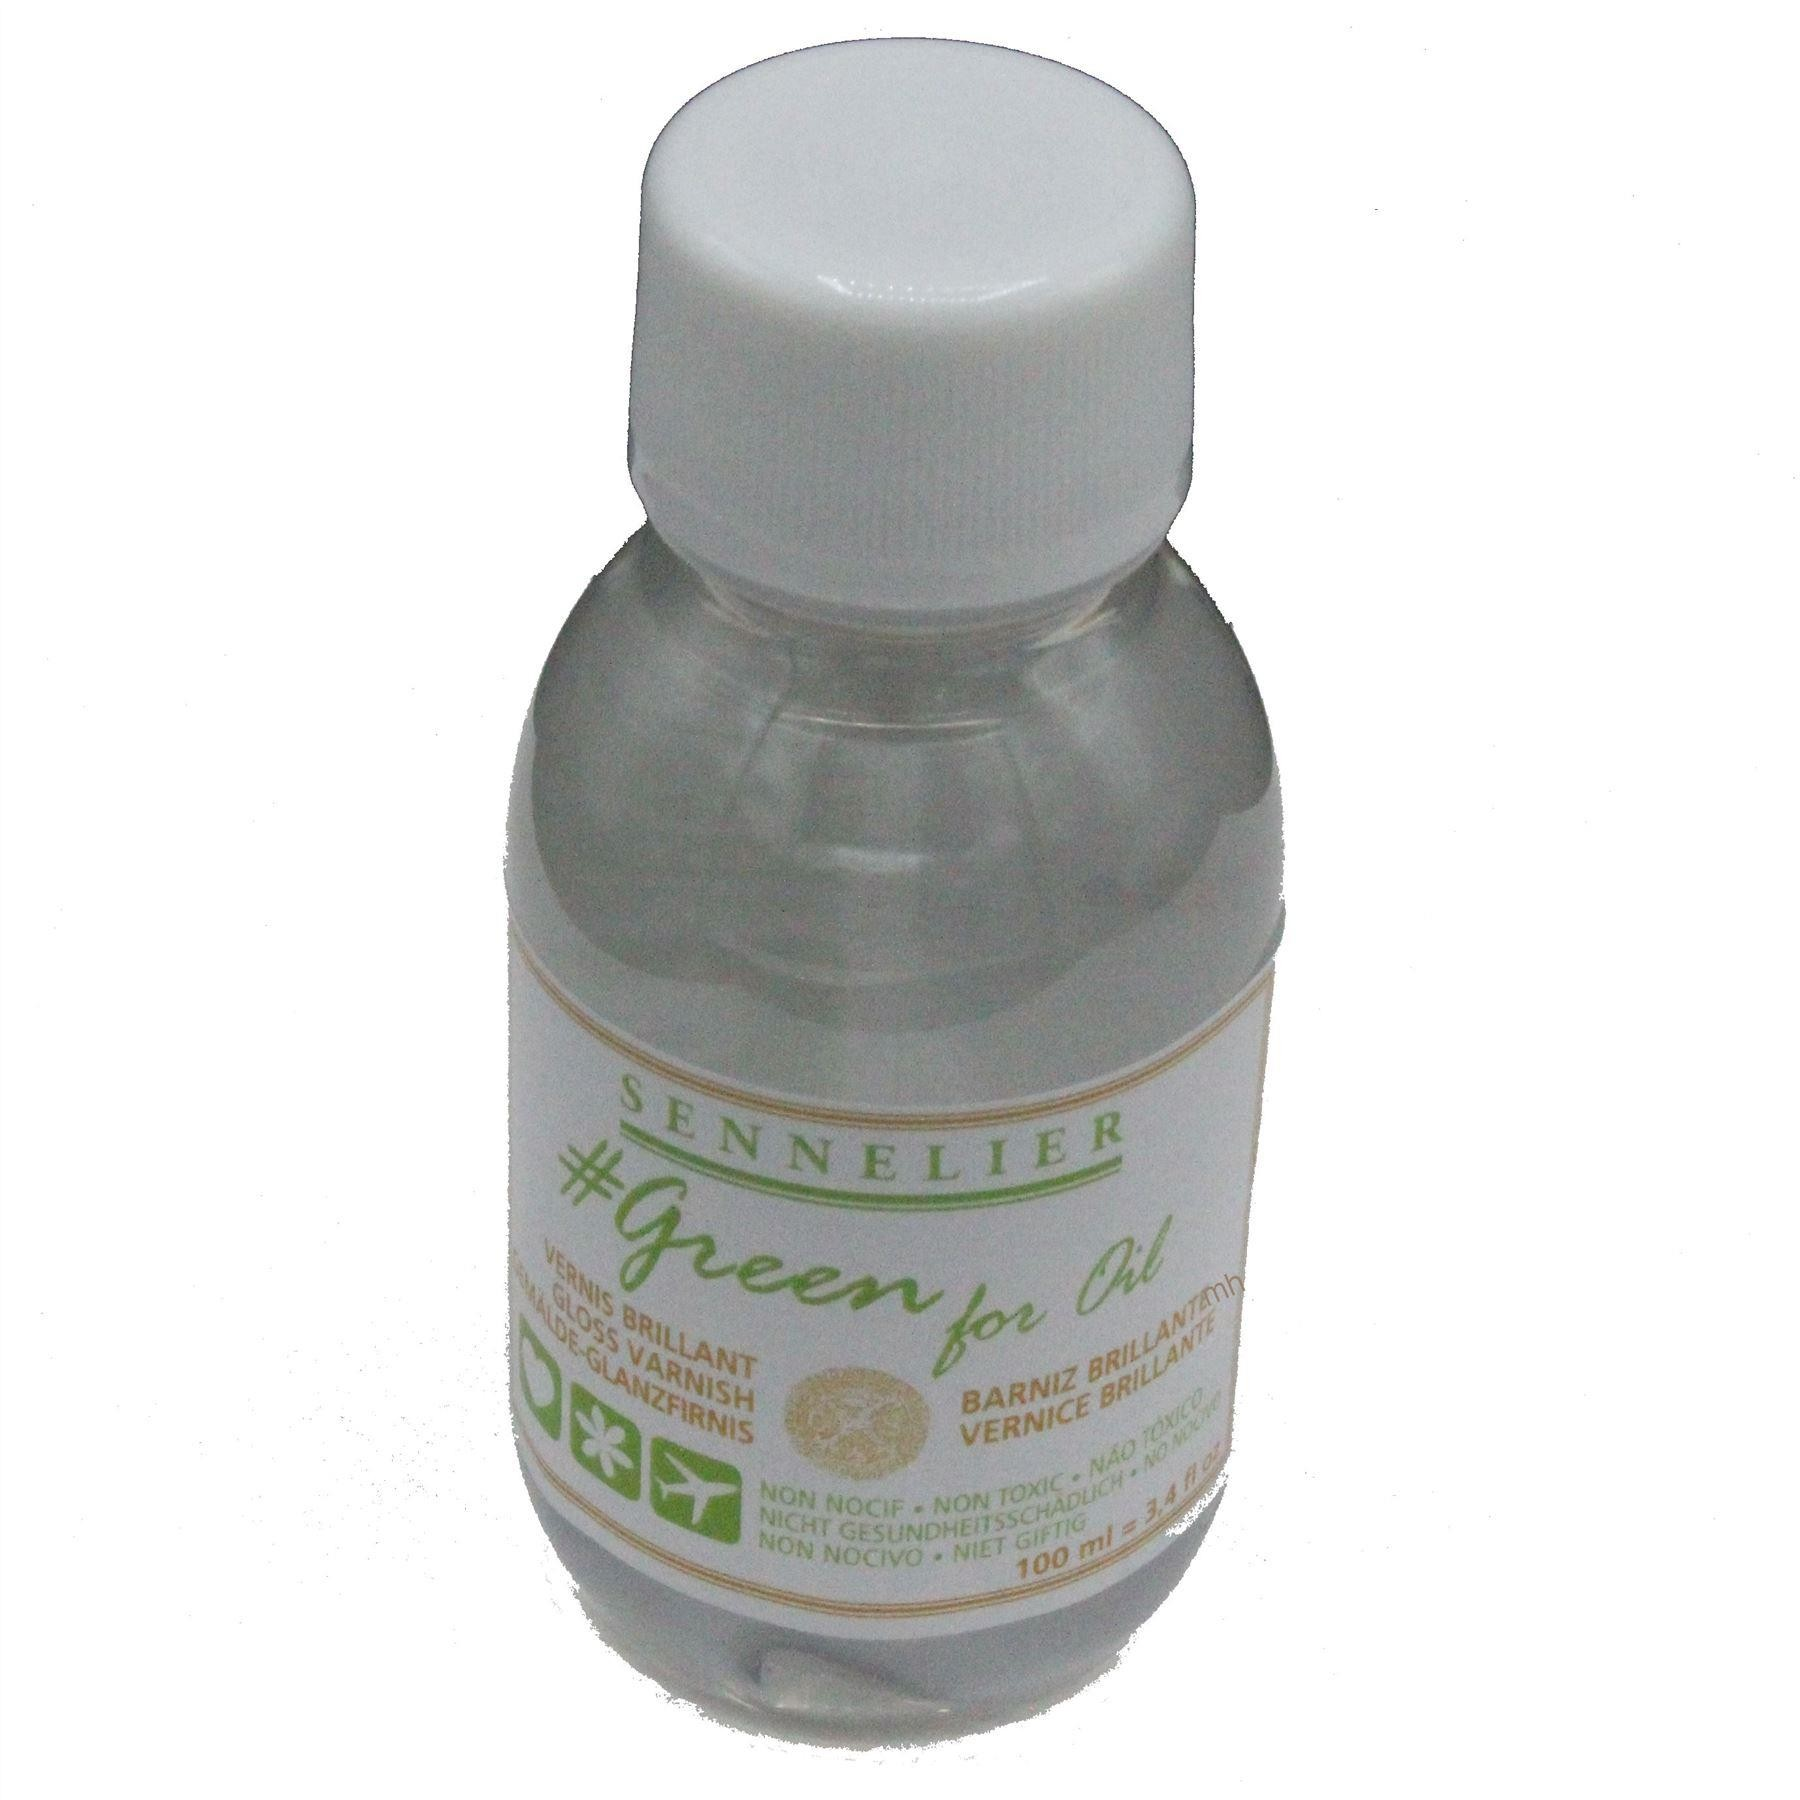 Sennelier Green for oil 100ml Gloss Varnish